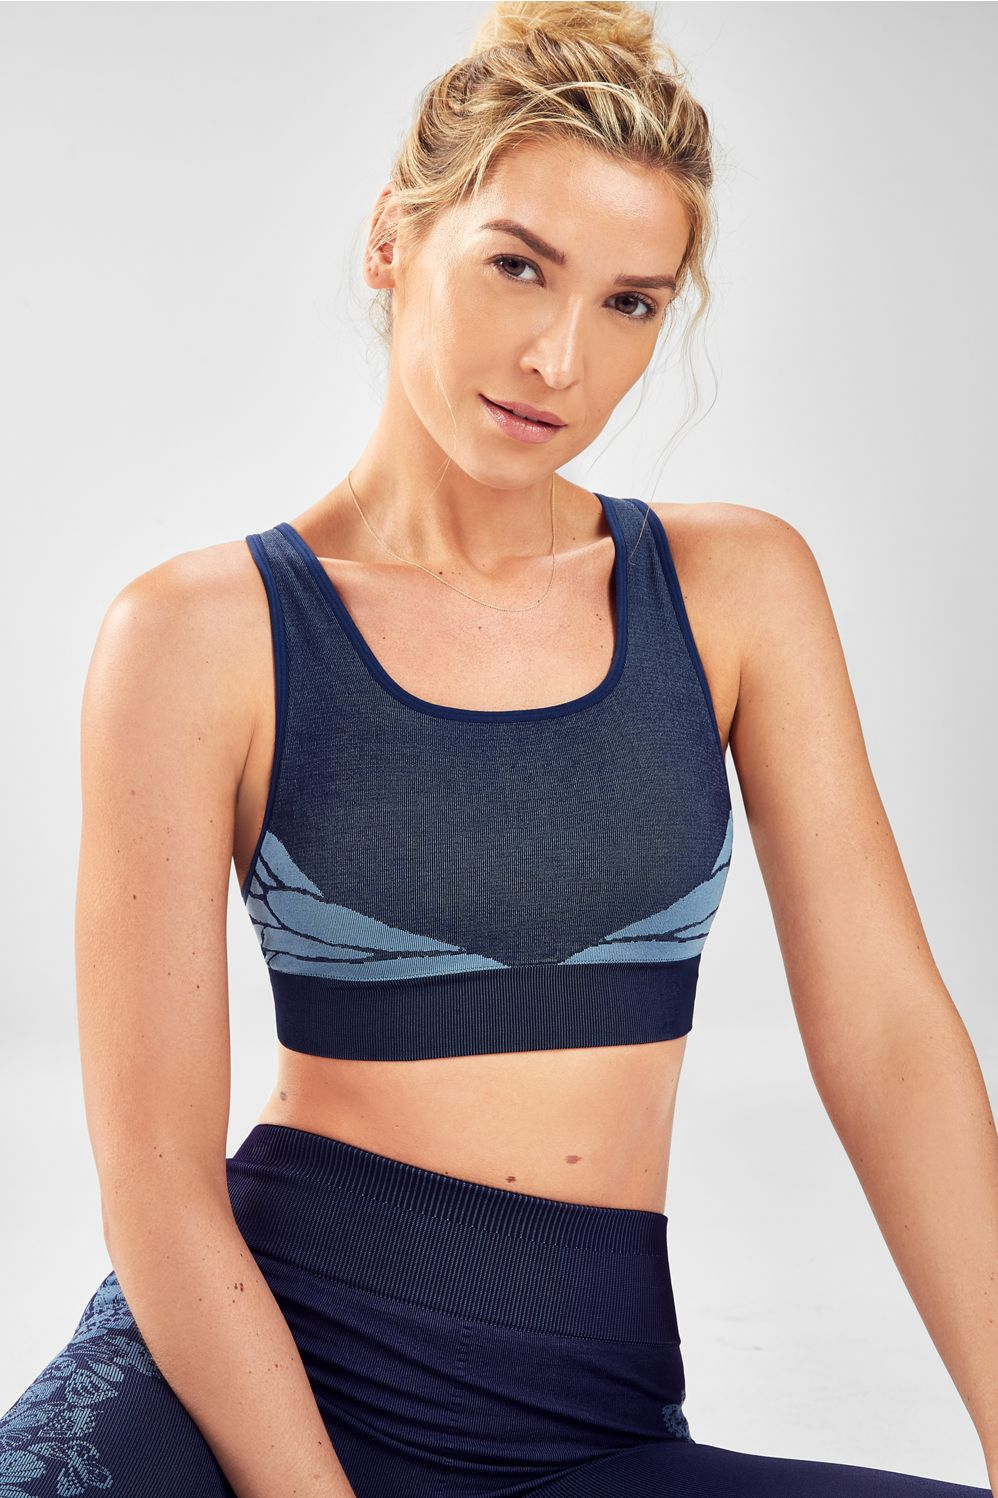 fb949264d9974 Eliza Seamless Sports Bra - abyss butterfly